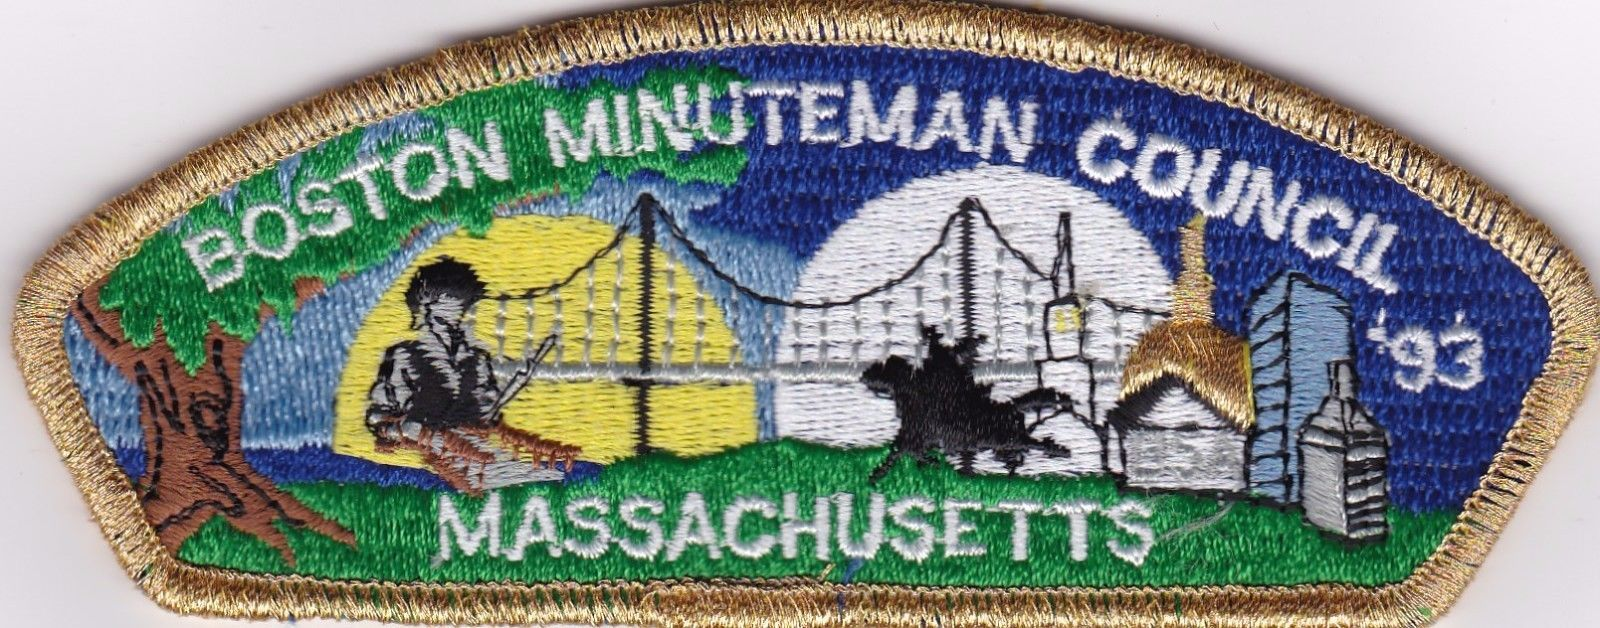 Boston Minuteman Council CSP - S2A